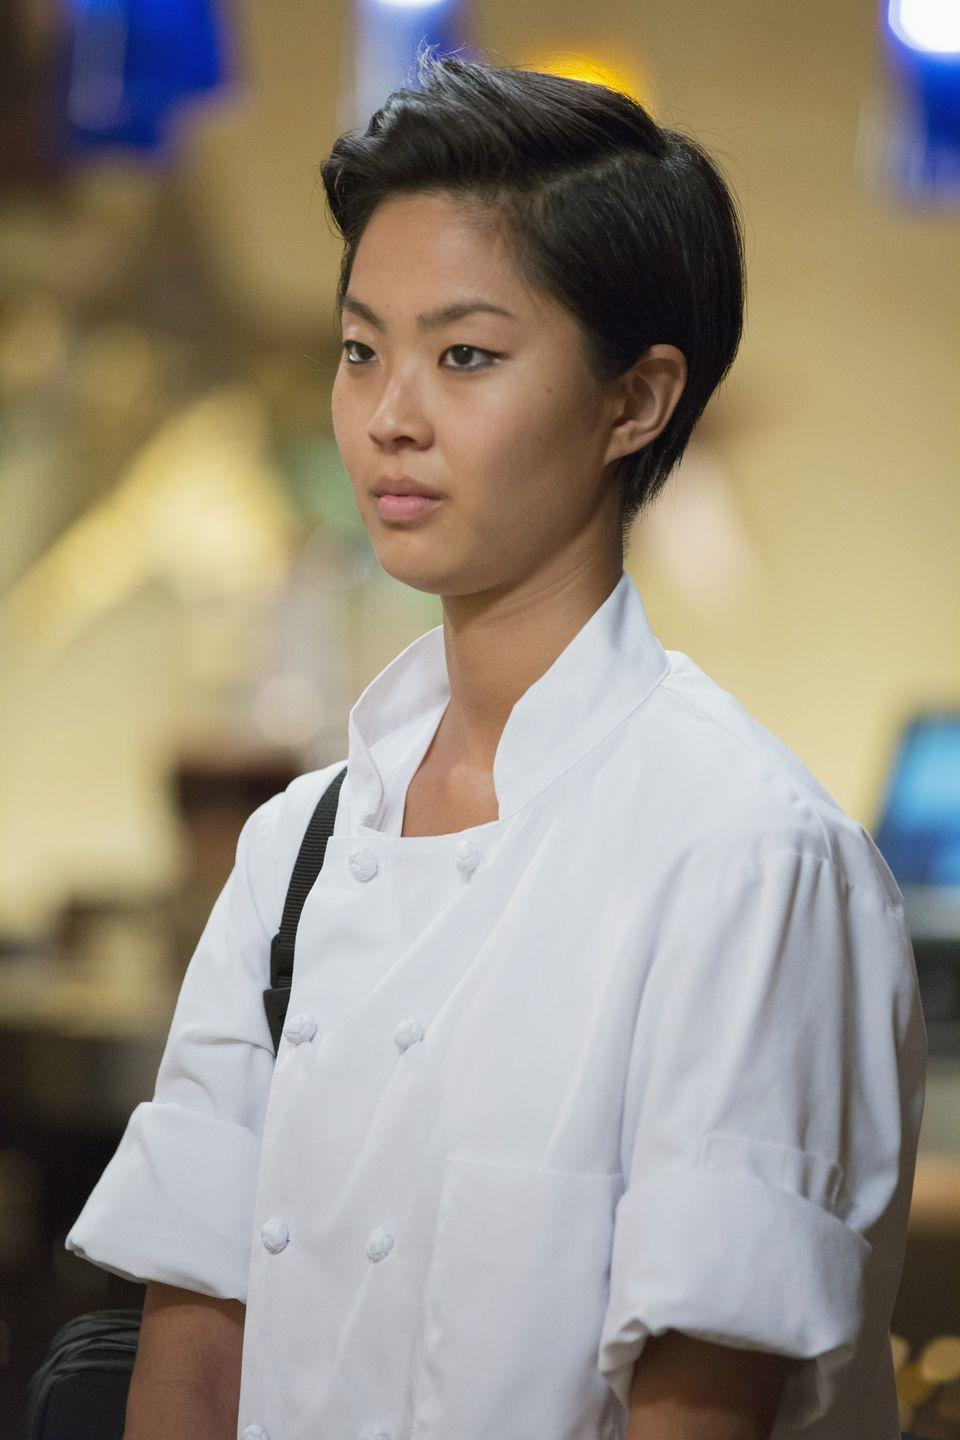 <p>After attending Le Cordon Bleu in Chicago and working in numerous restaurants as Chef de Cuisine, Kristen Kish became the second woman to win the <em>Top Chef </em>title when she beat out Brooke Williamson in season 10. </p>